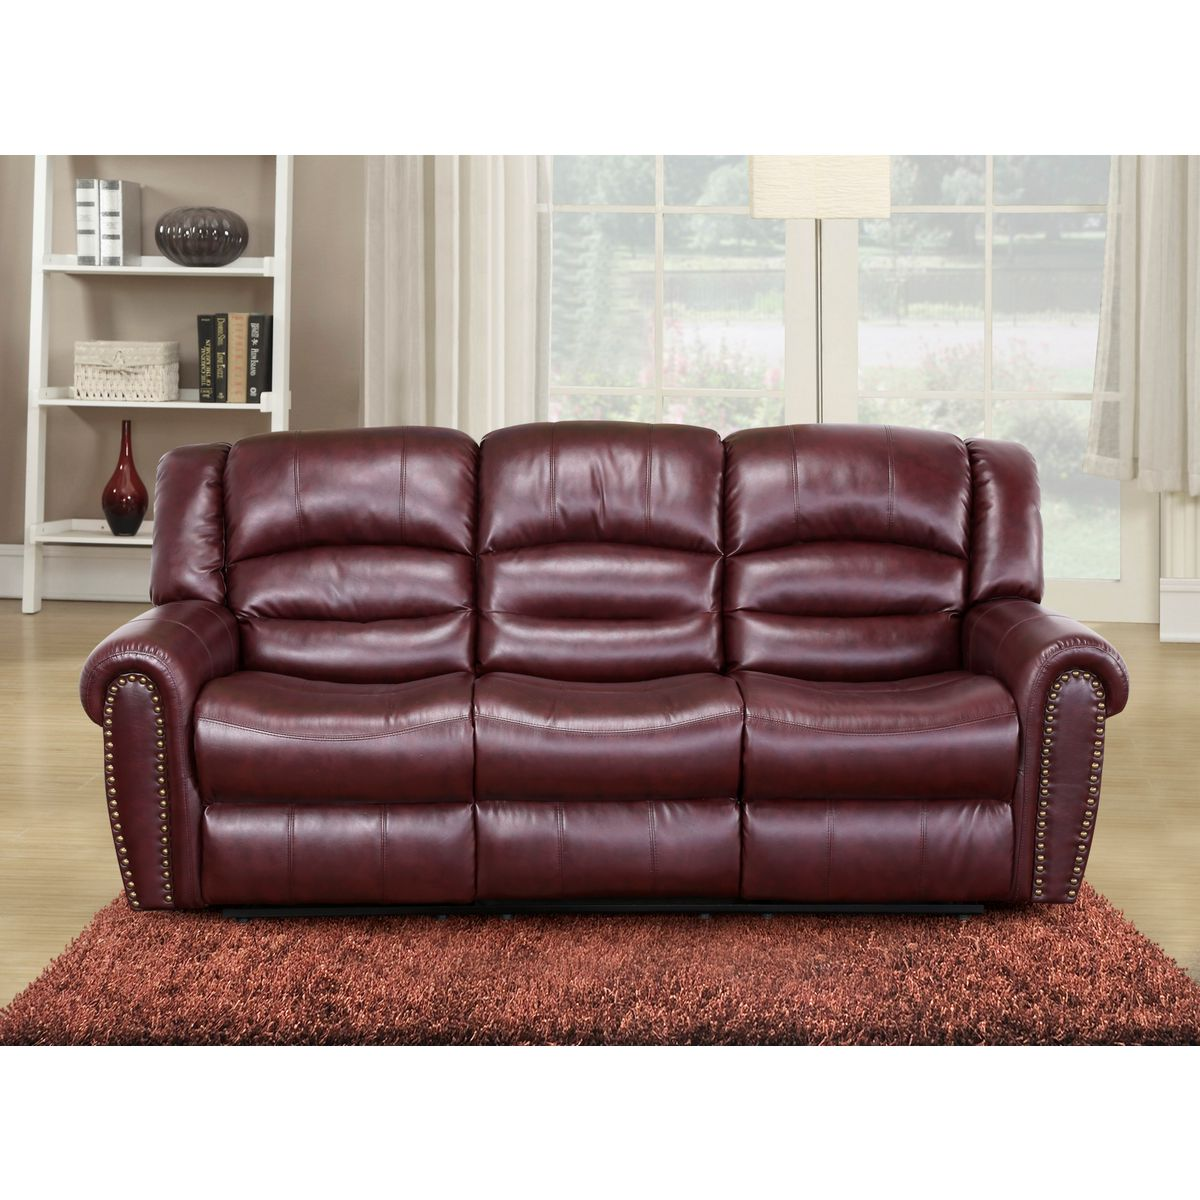 chelsea square sofa bed convertible ikea leather 54 bank